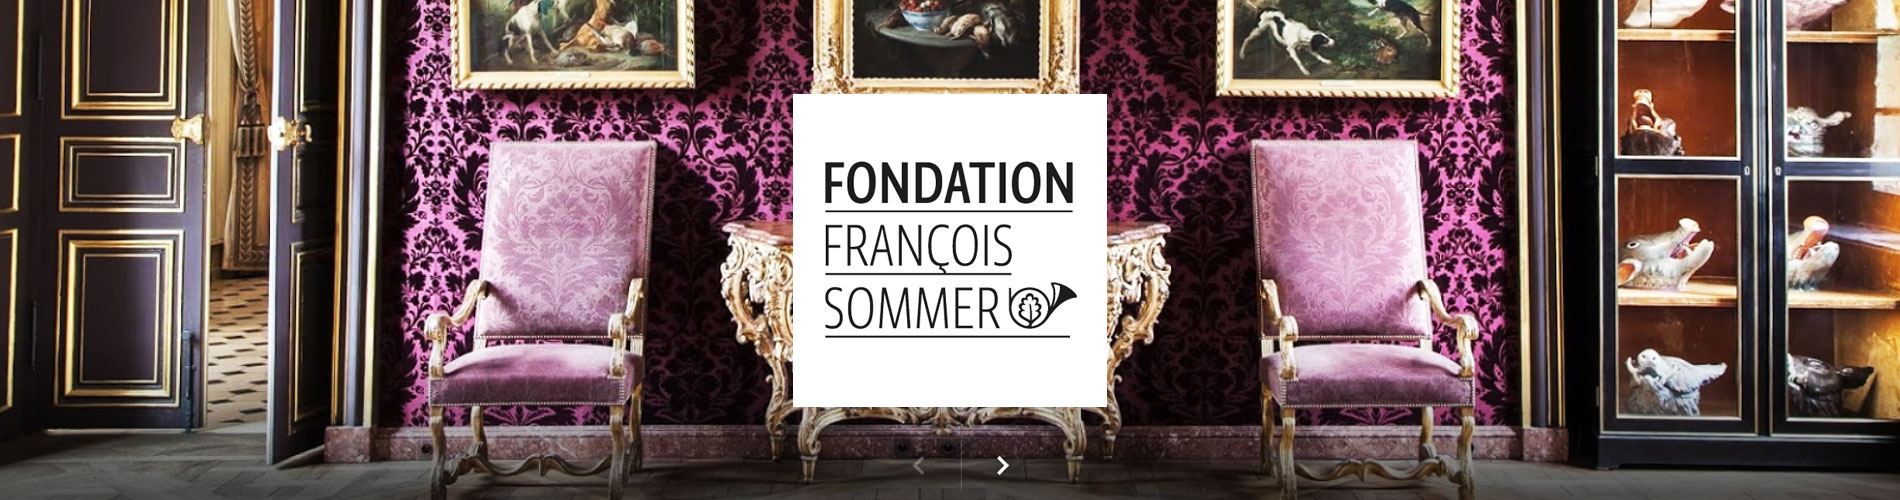 slider-fondation-sommer